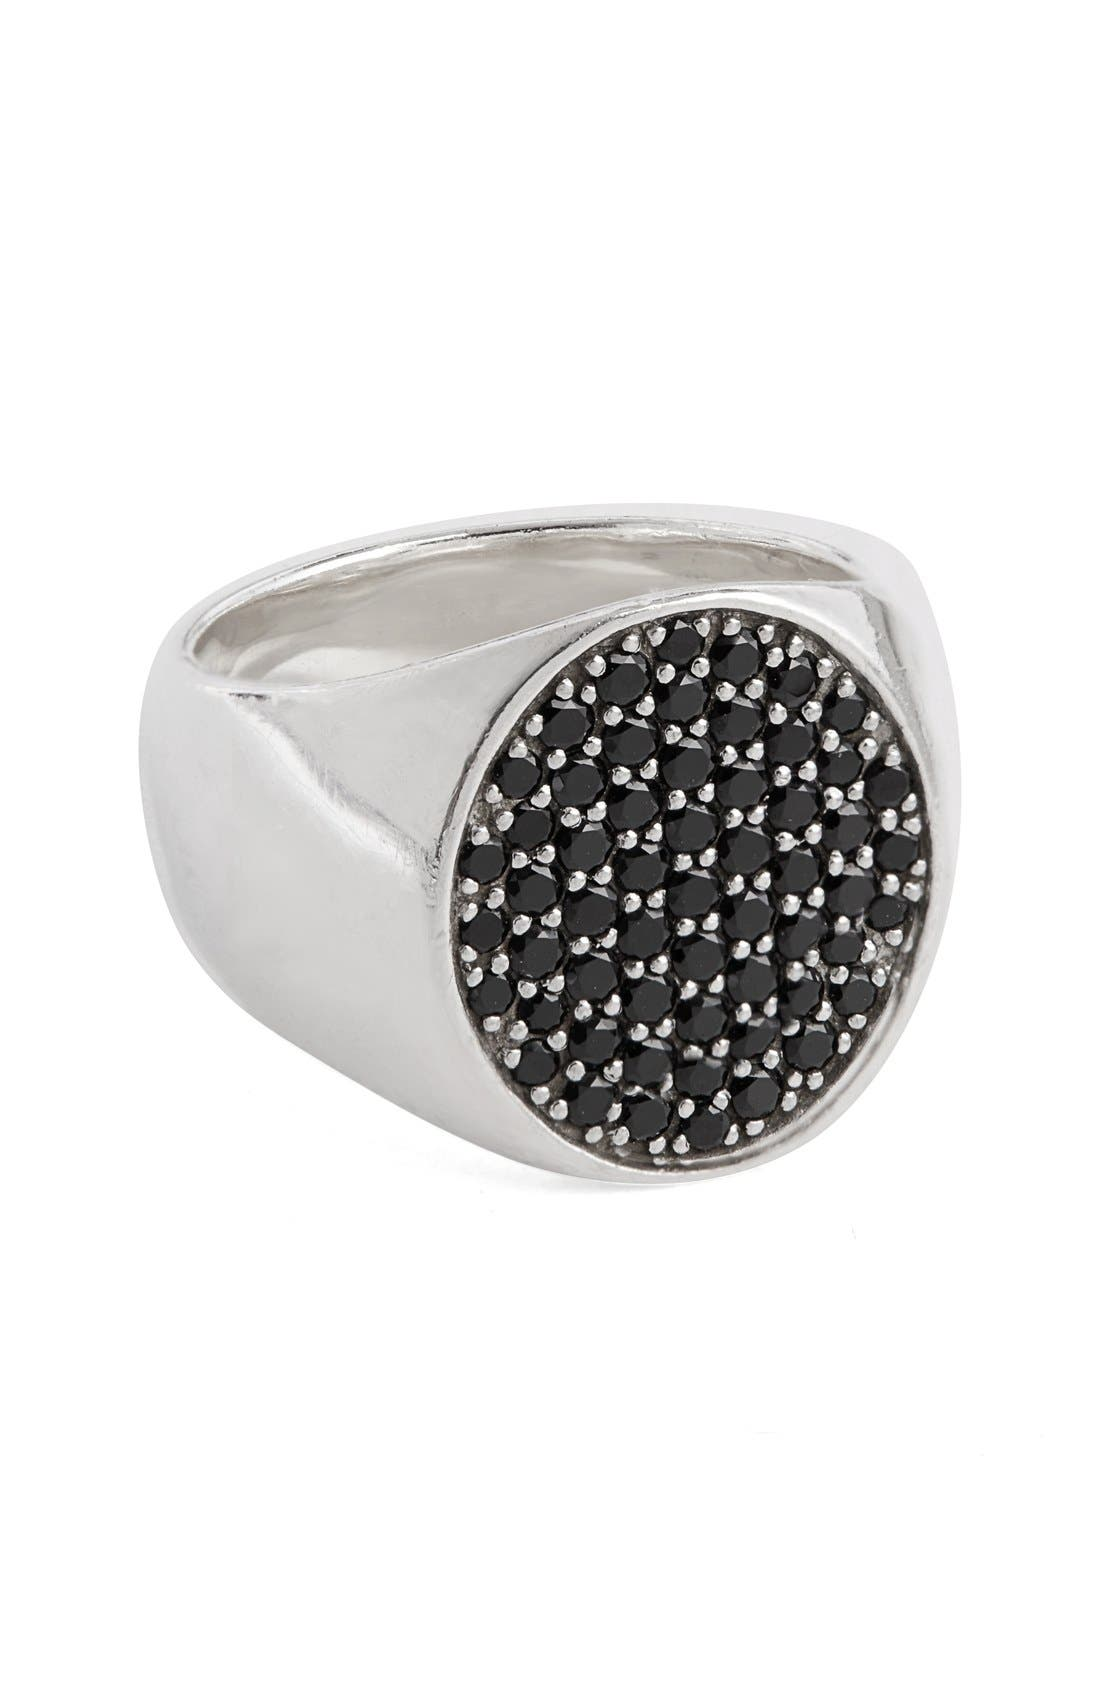 Main Image - Tom Wood Black Spinel Oval Pinkie Ring